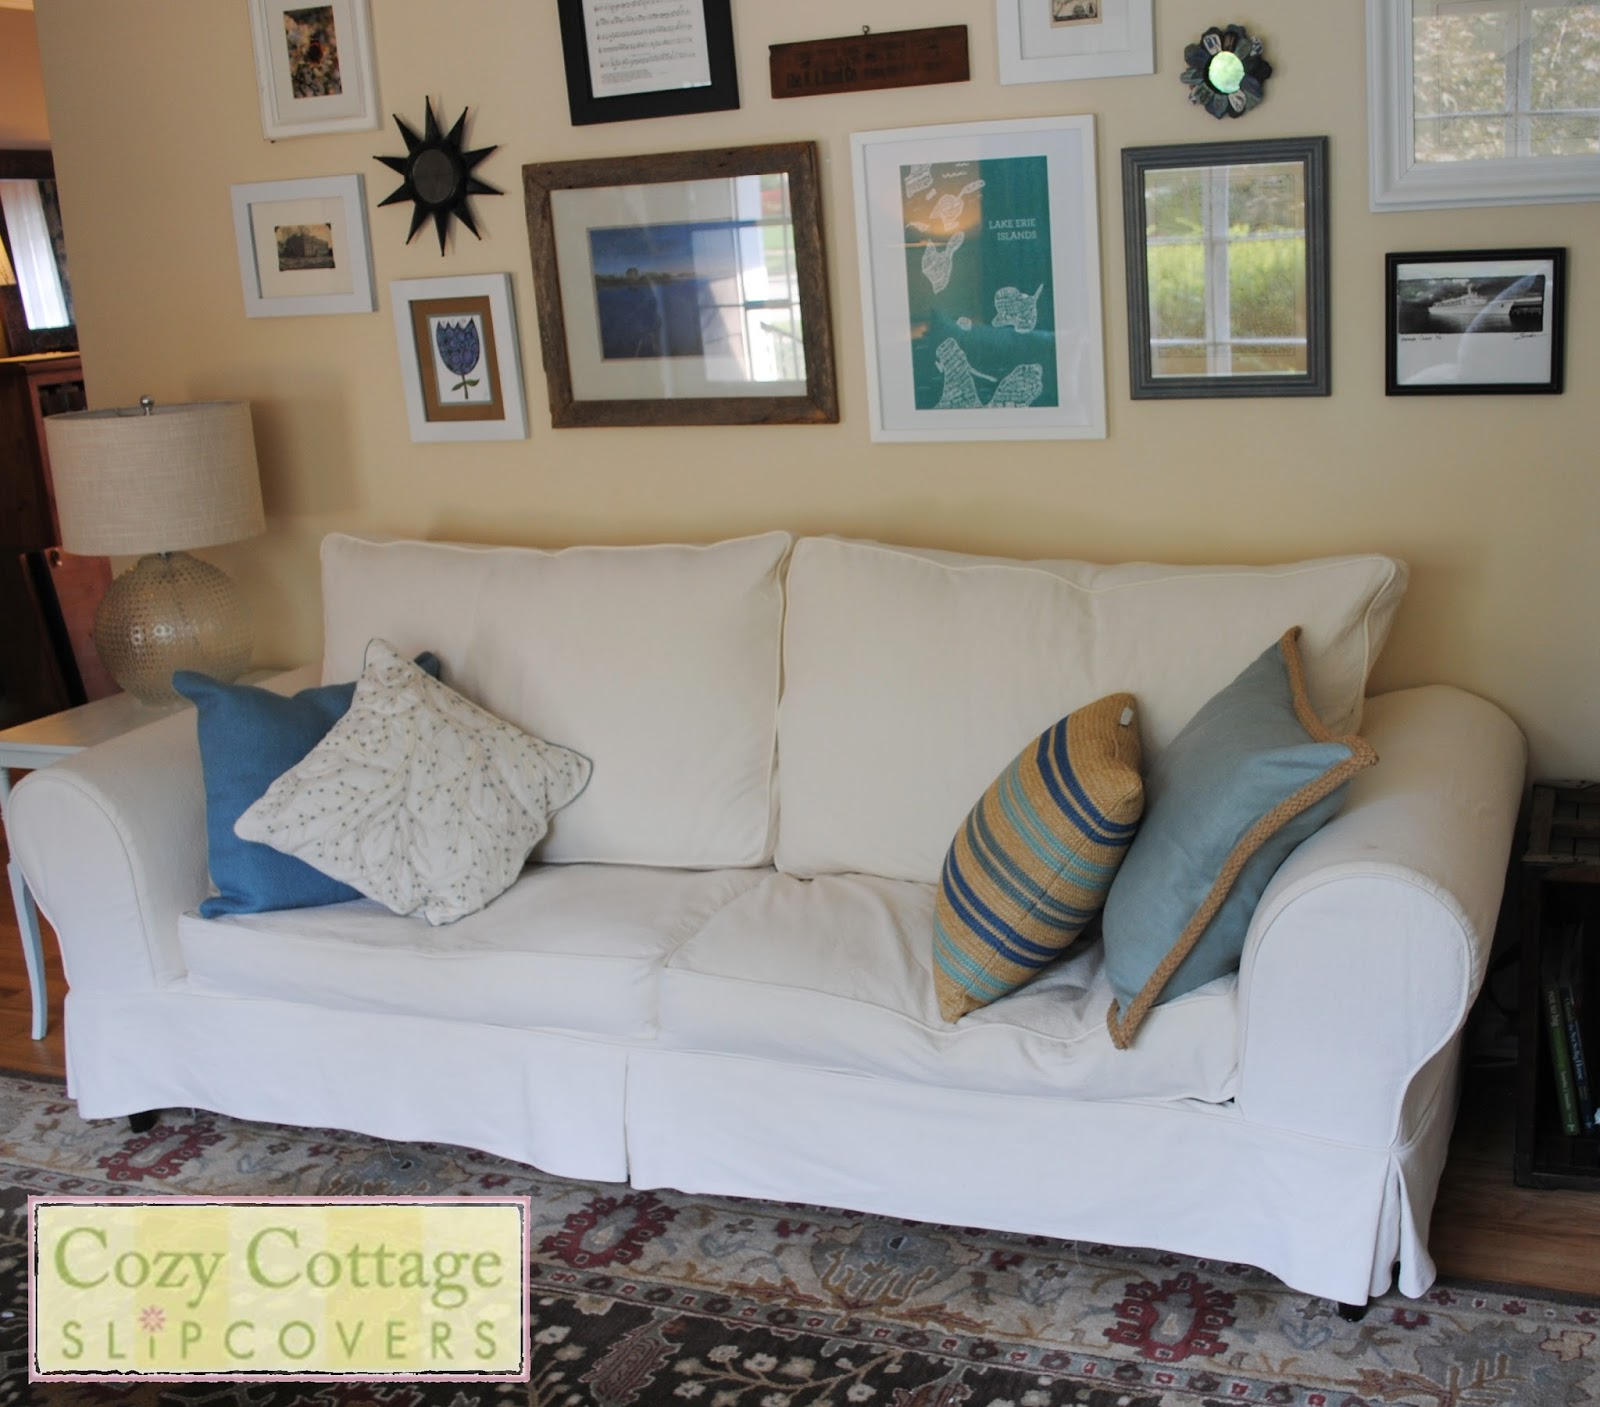 Cozy Cottage Slipcovers From Pillows to Boxed Cushions